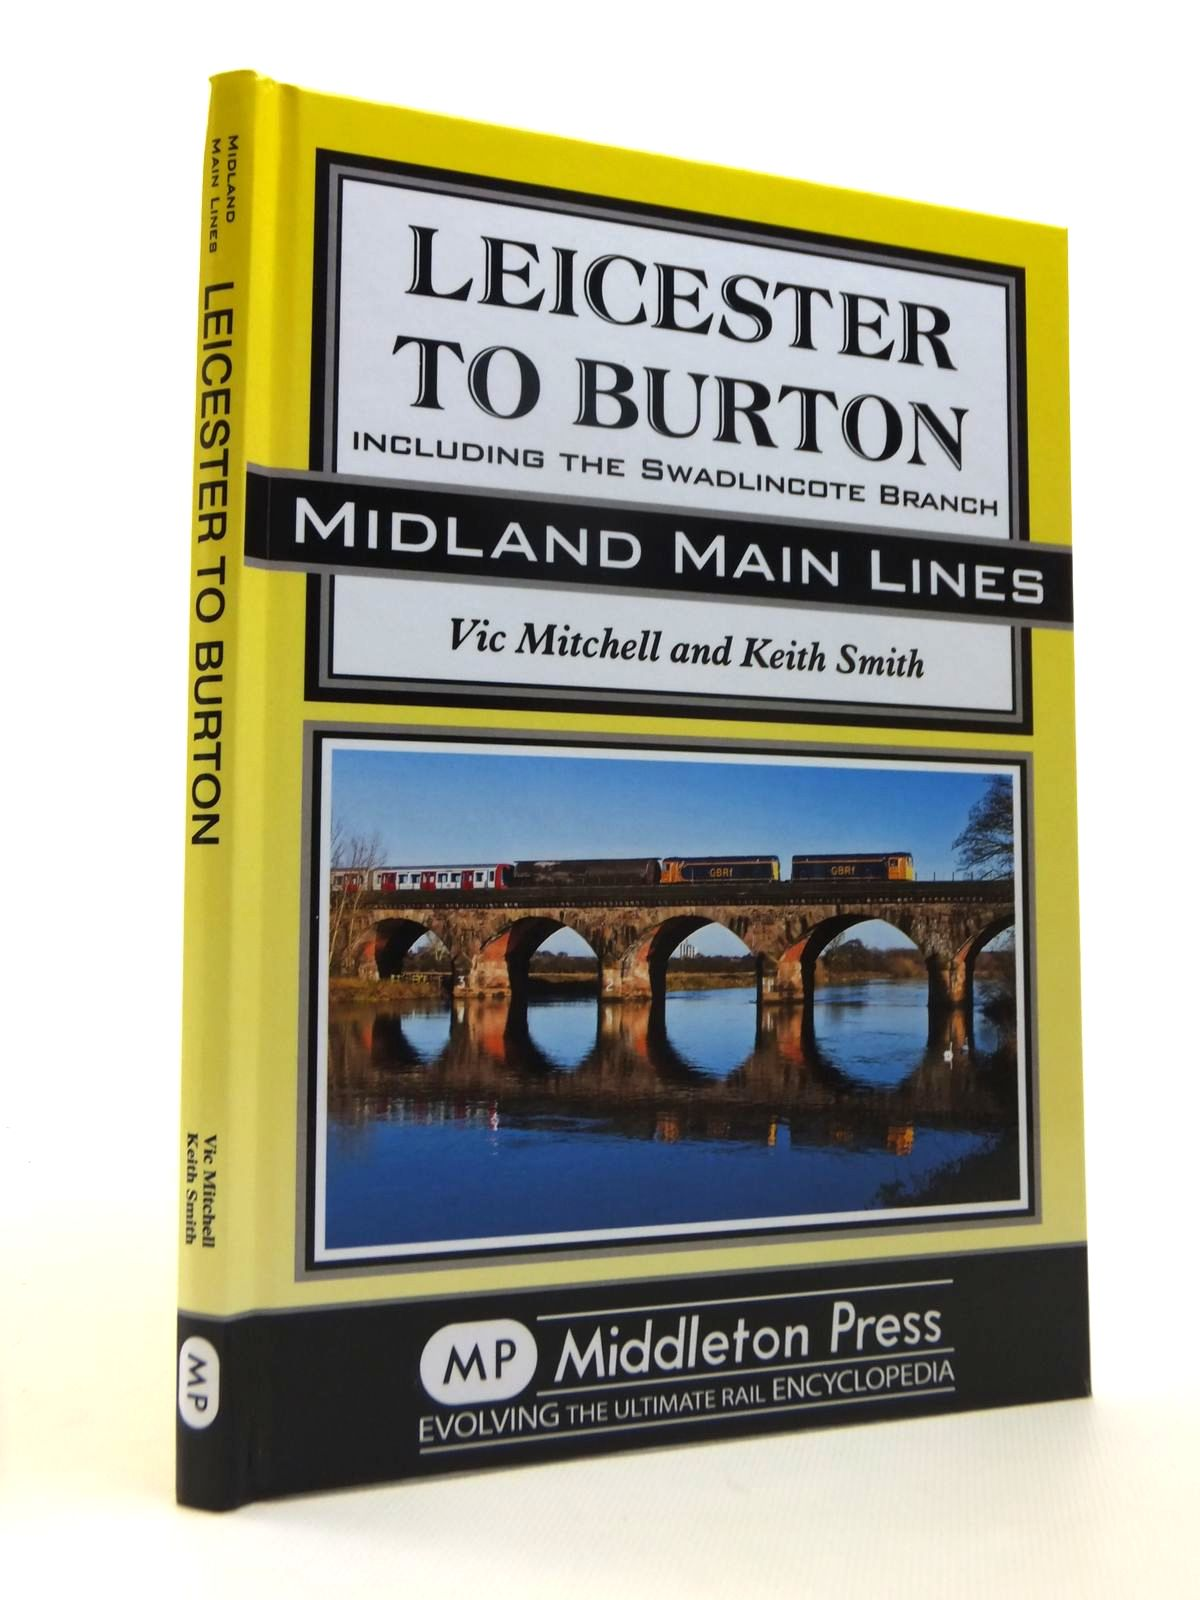 Photo of LEICESTER TO BURTON INCLUDING THE SWADLINCOTE BRANCH (MIDLAND MAIN LINES) written by Mitchell, Vic Smith, Keith published by Middleton Press (STOCK CODE: 1812333)  for sale by Stella & Rose's Books